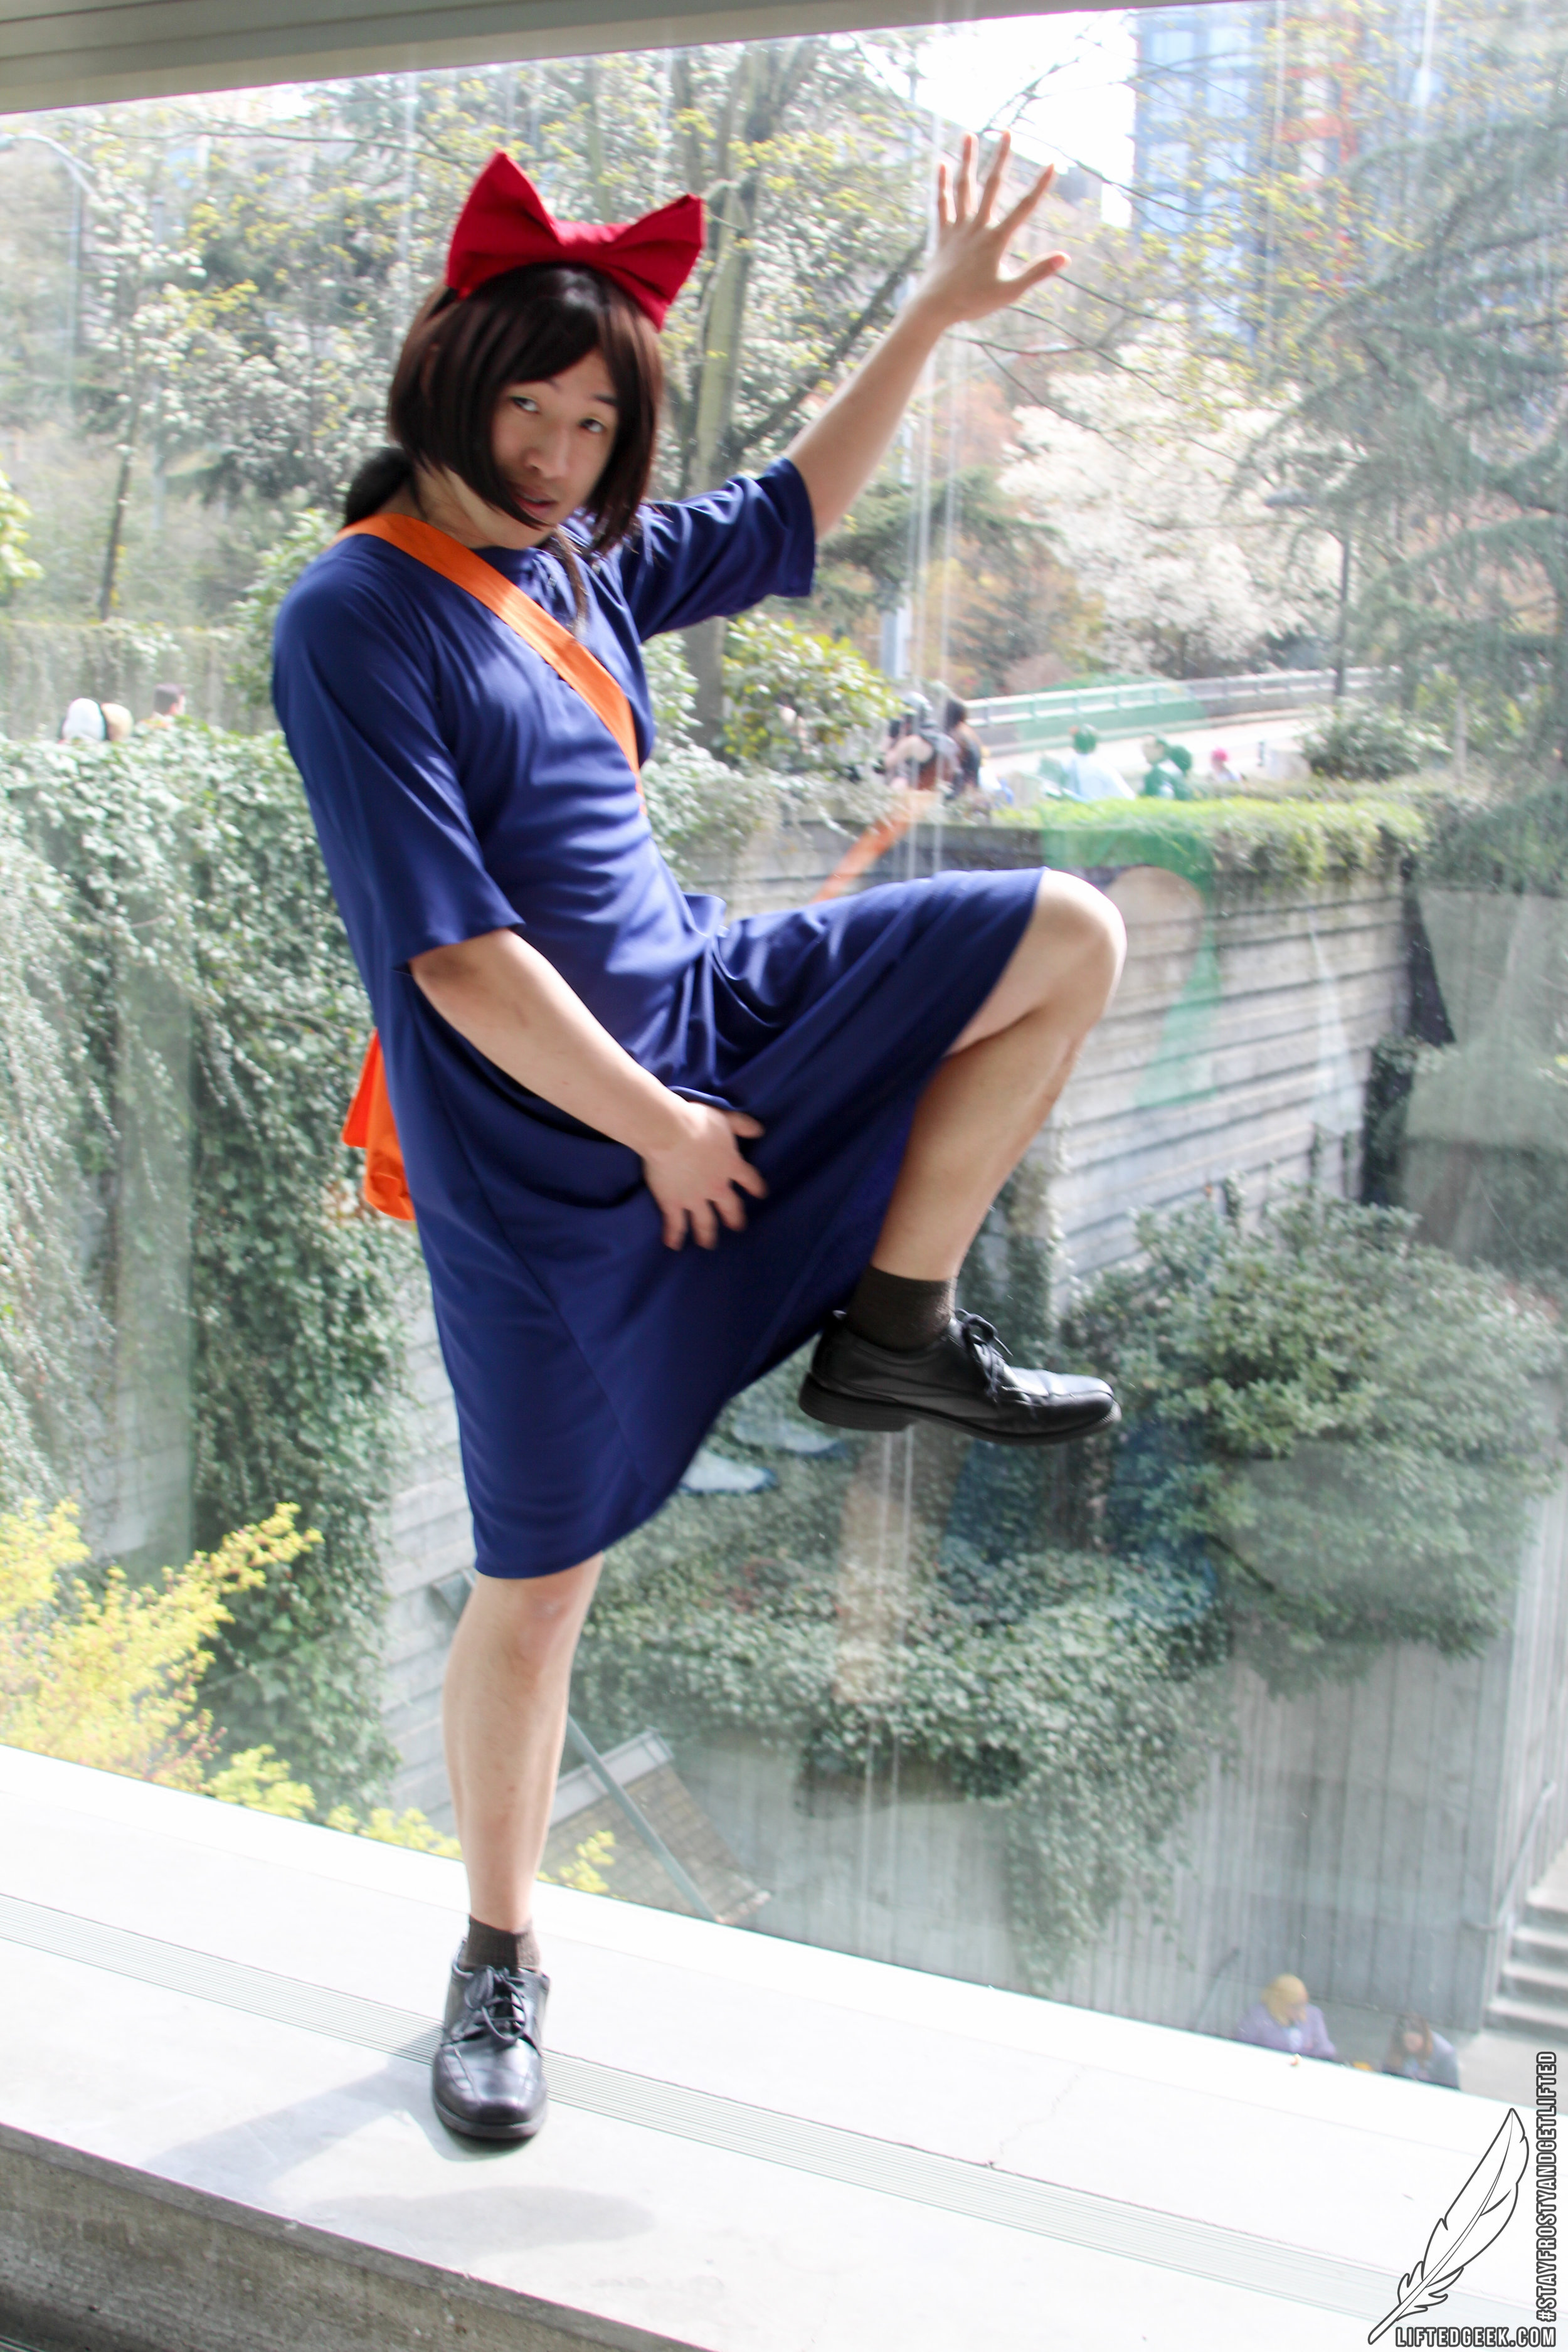 Sakuracon-cosplay-11.jpg